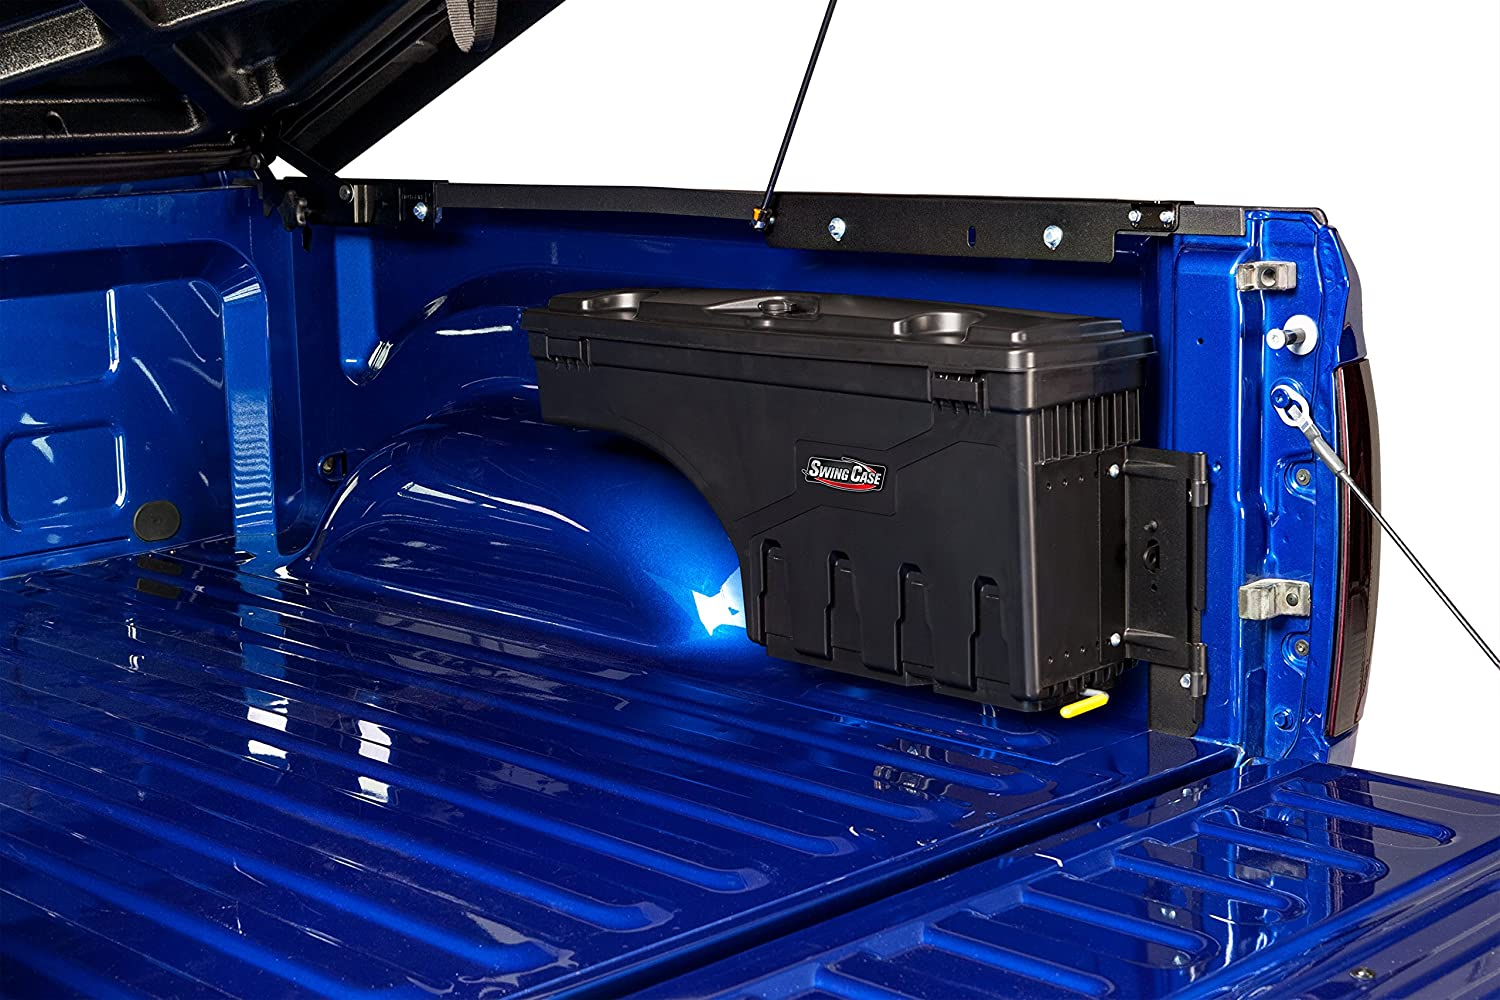 fits 2007-2019 Toyota Tundra Drivers Side SC400D UnderCover SwingCase Truck Storage Box